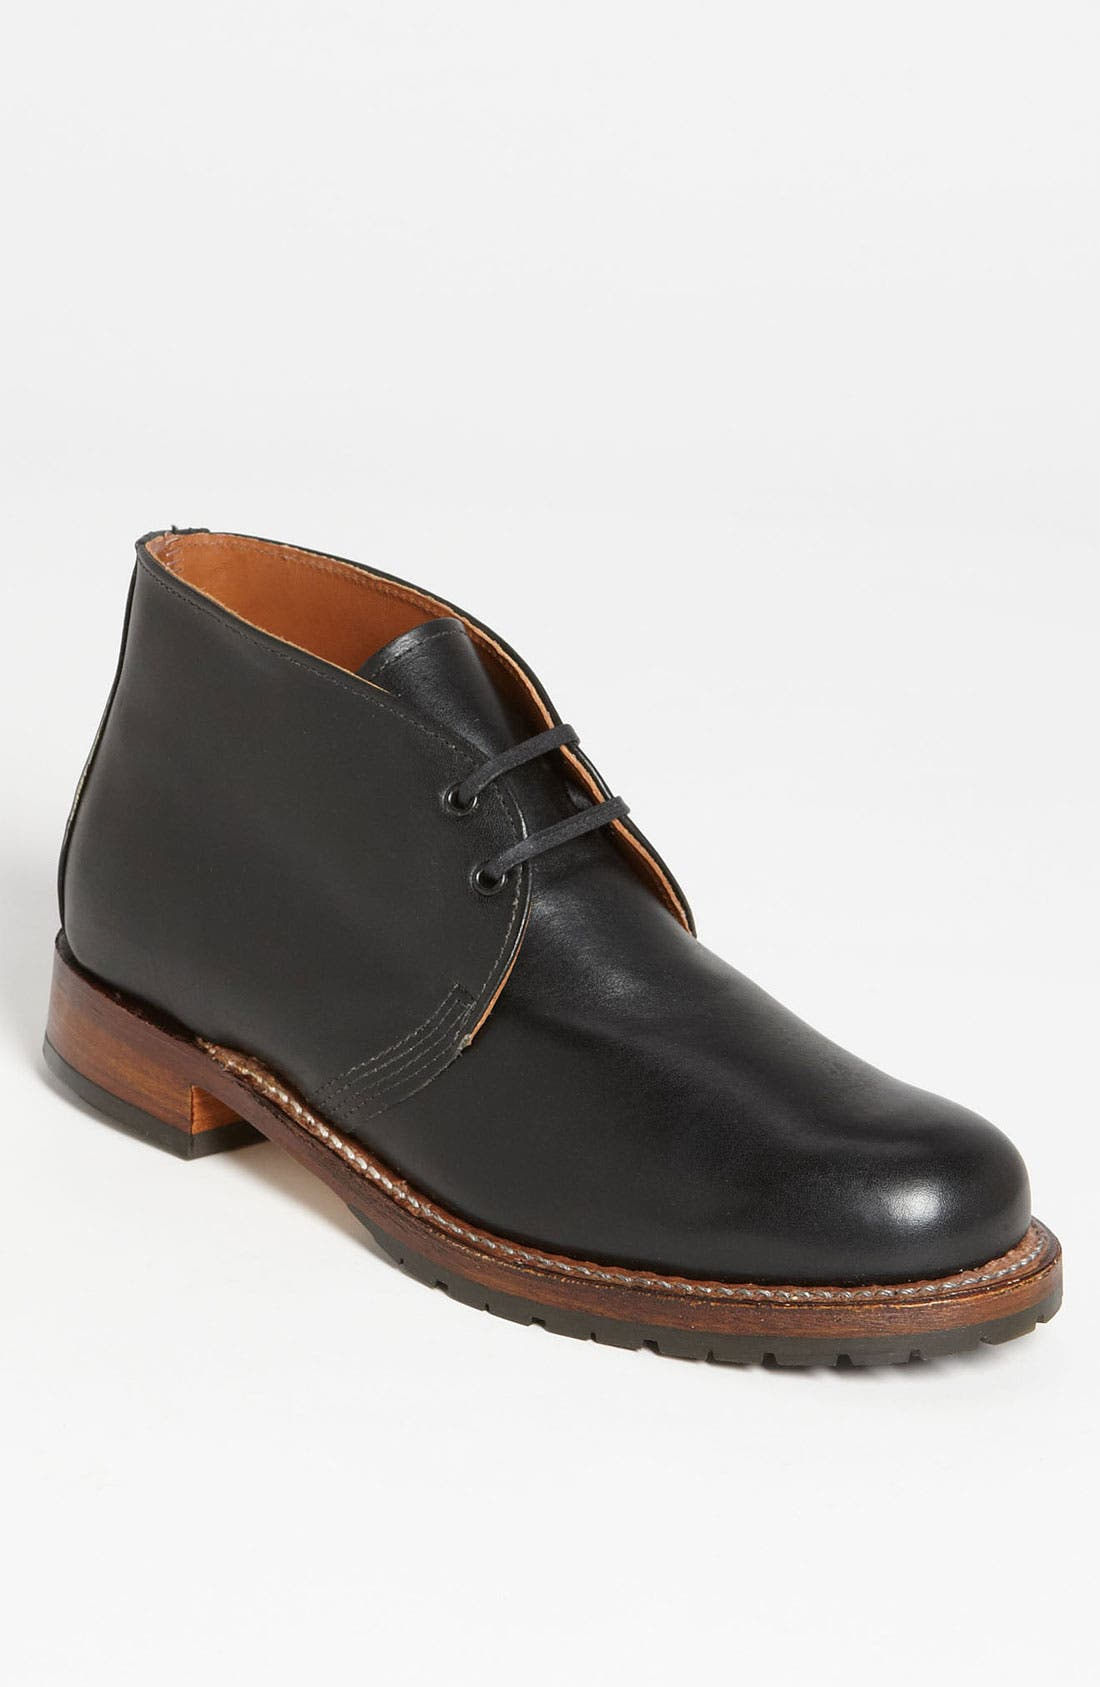 'Beckman' Chukka Boot,                         Main,                         color, 001